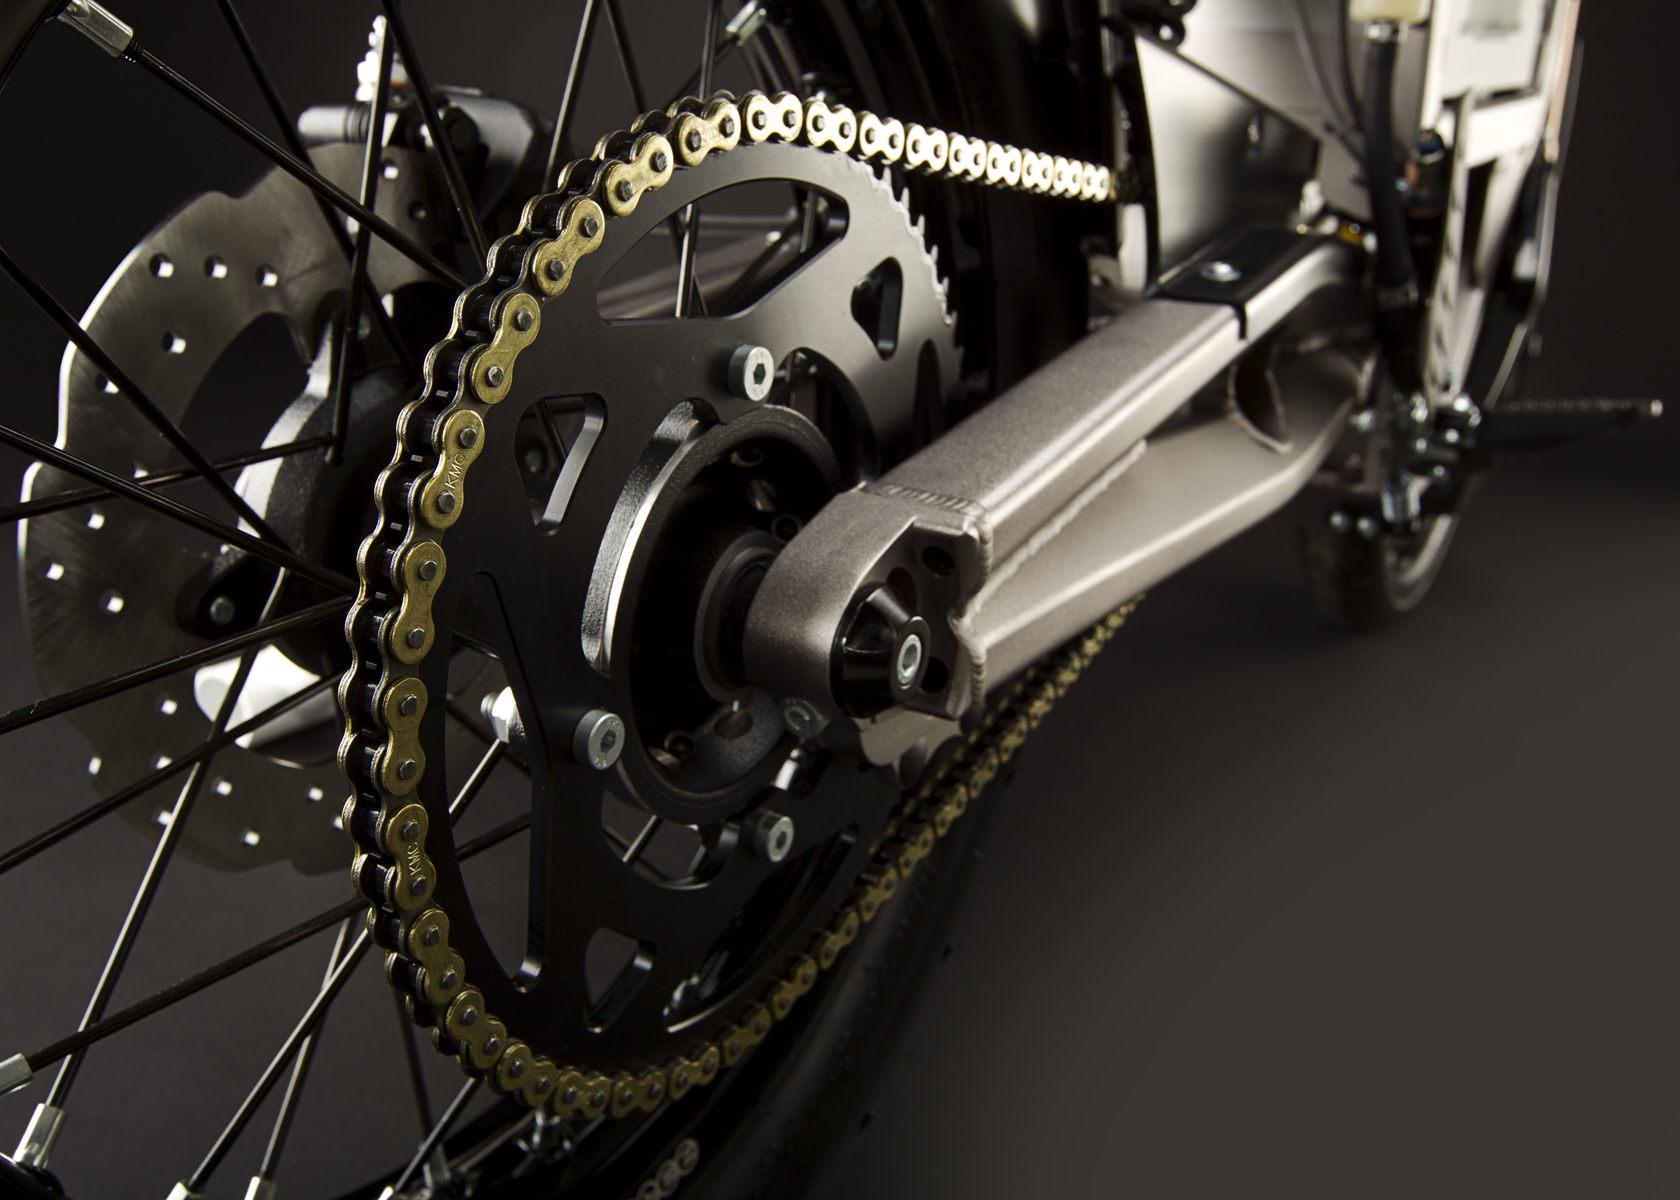 2011 Zero XU Electric Motorcycle: Drivetrain / Chain / Sprocket